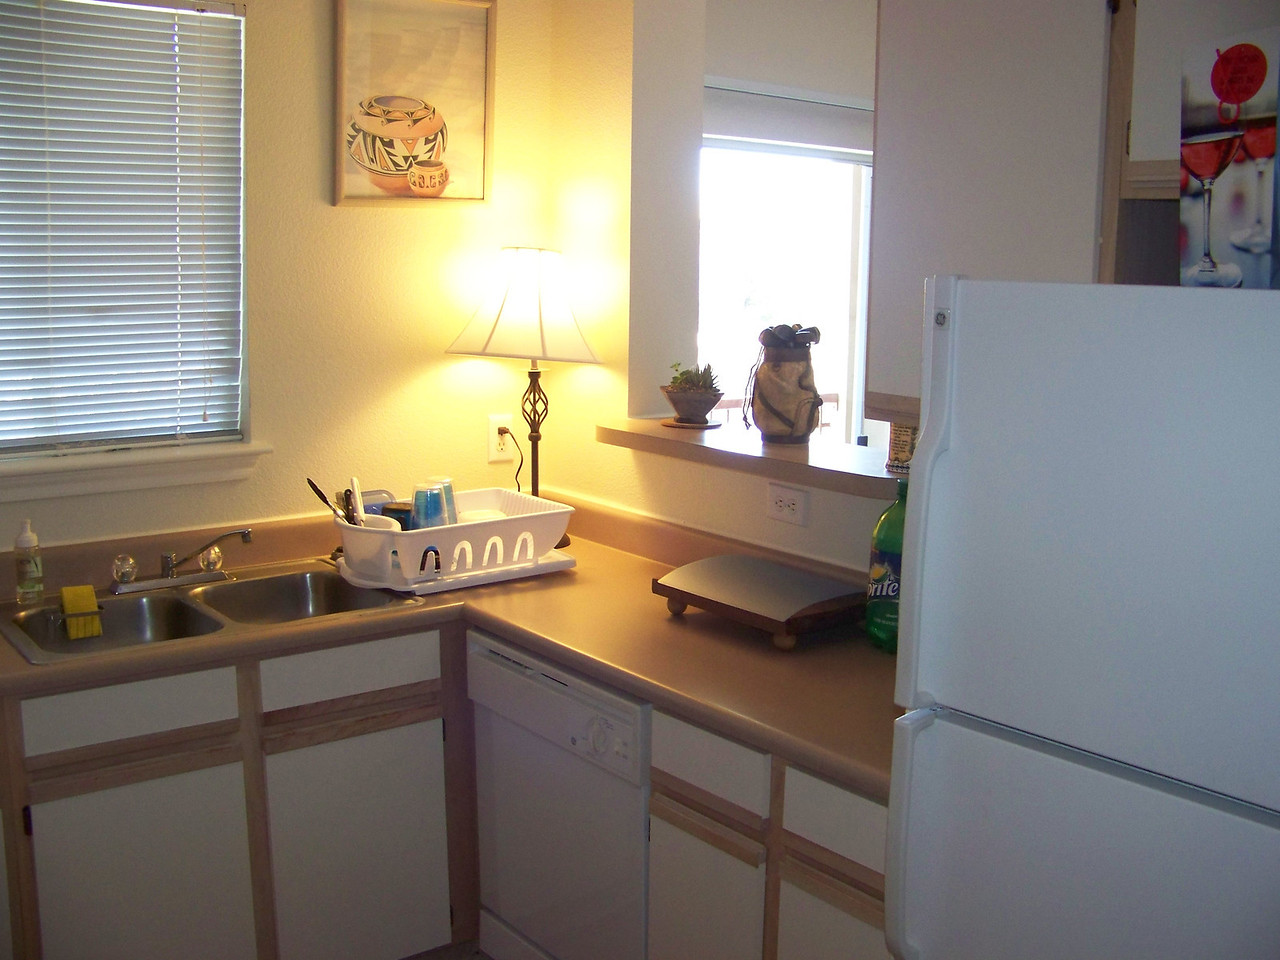 One side of the kitchen with the pass-through window.